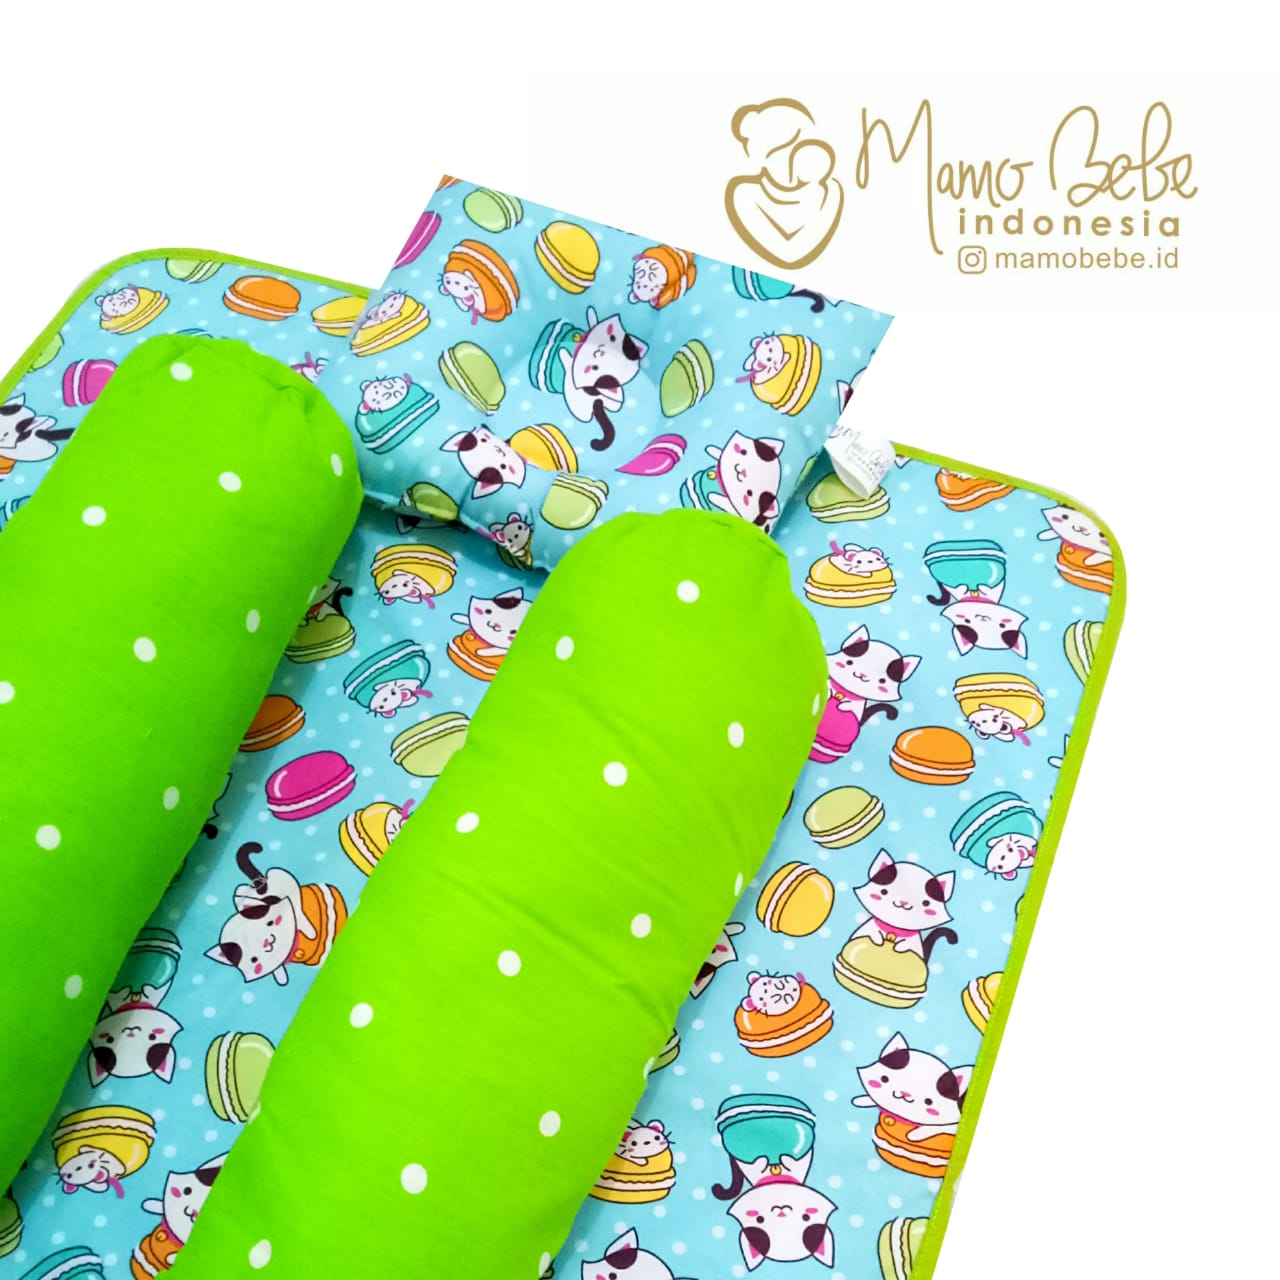 EKSKLUSIF Kado Bayi Baby Bedding Set 4in1 Matras Perlak Set Bantal Peang Plus 2 Guling motif Cat Macaroon Biru